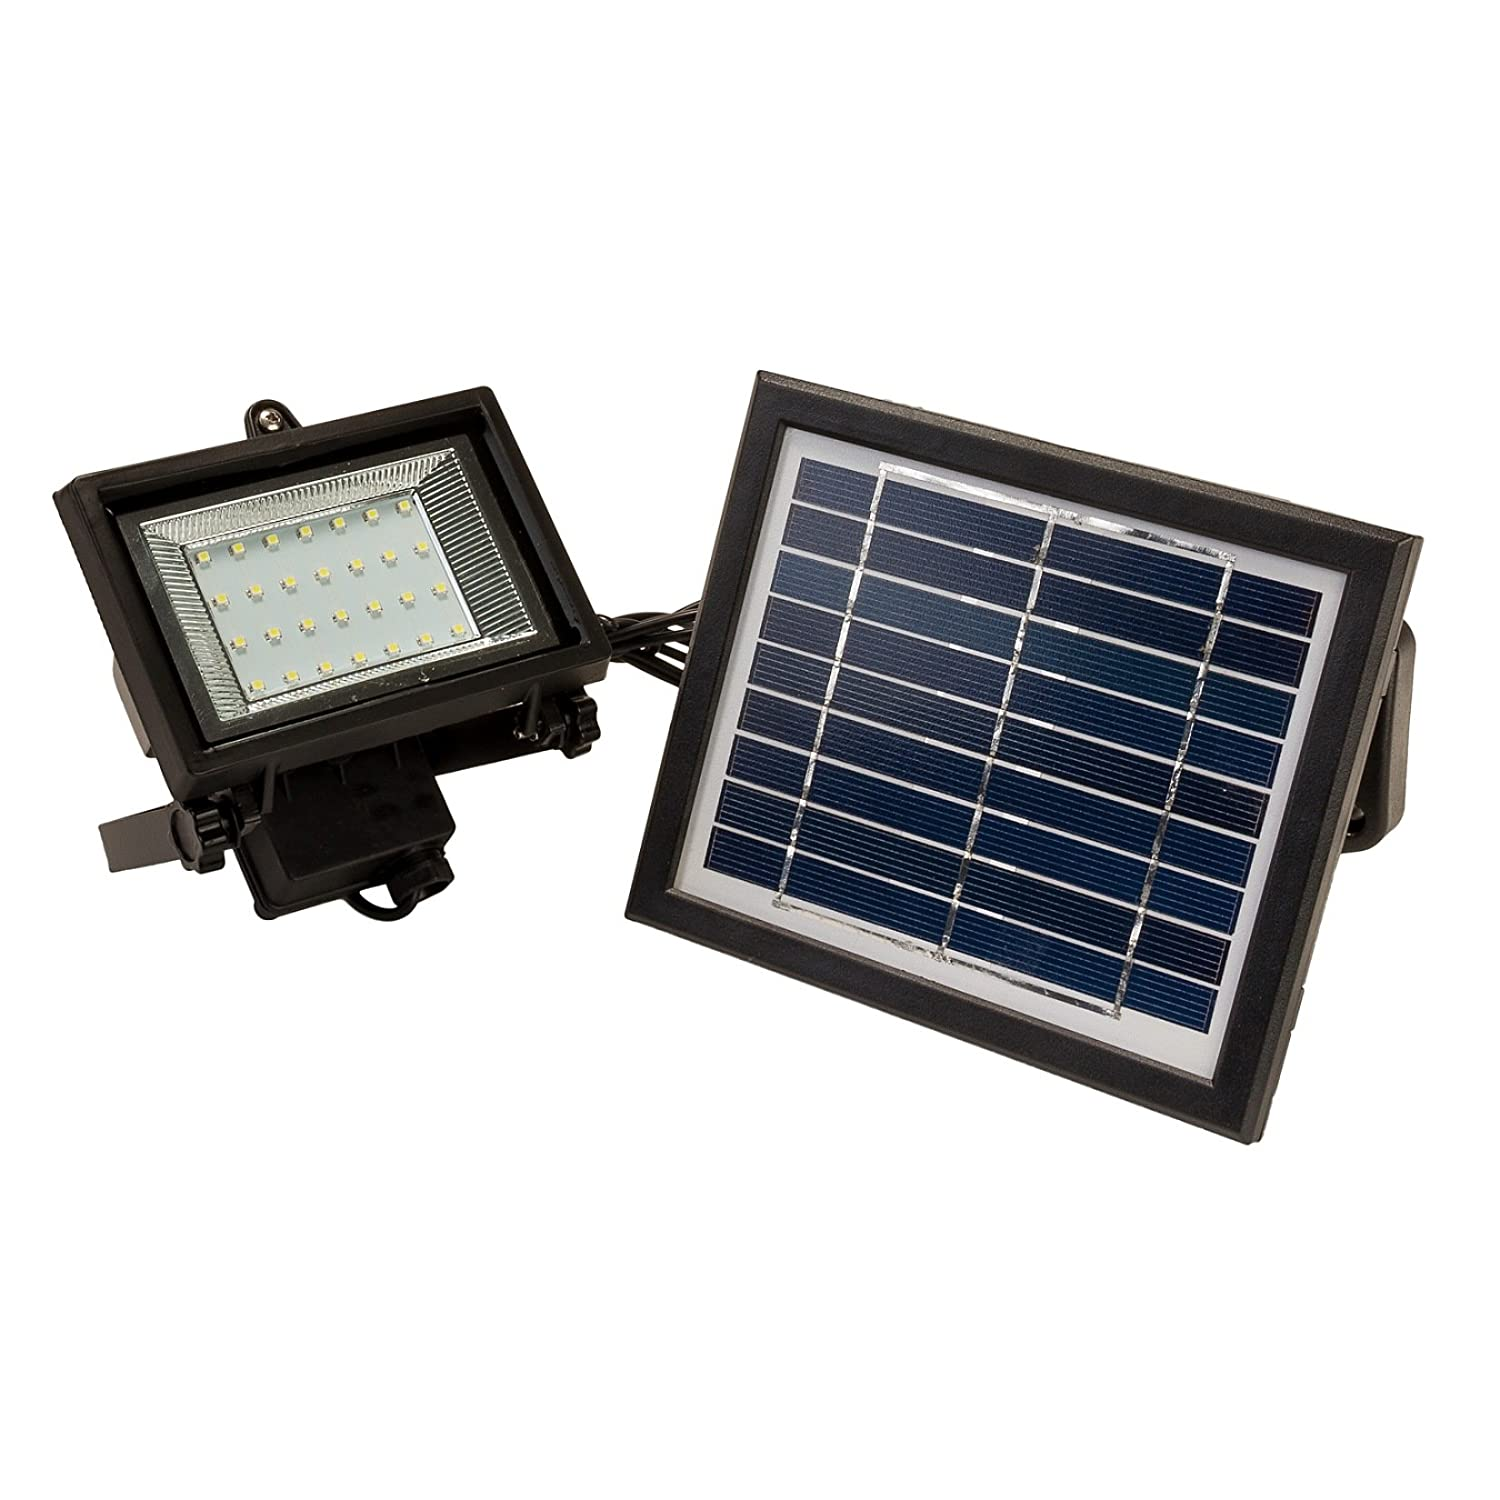 Reusable Revolution 28 LED Solar Powered Flood Light